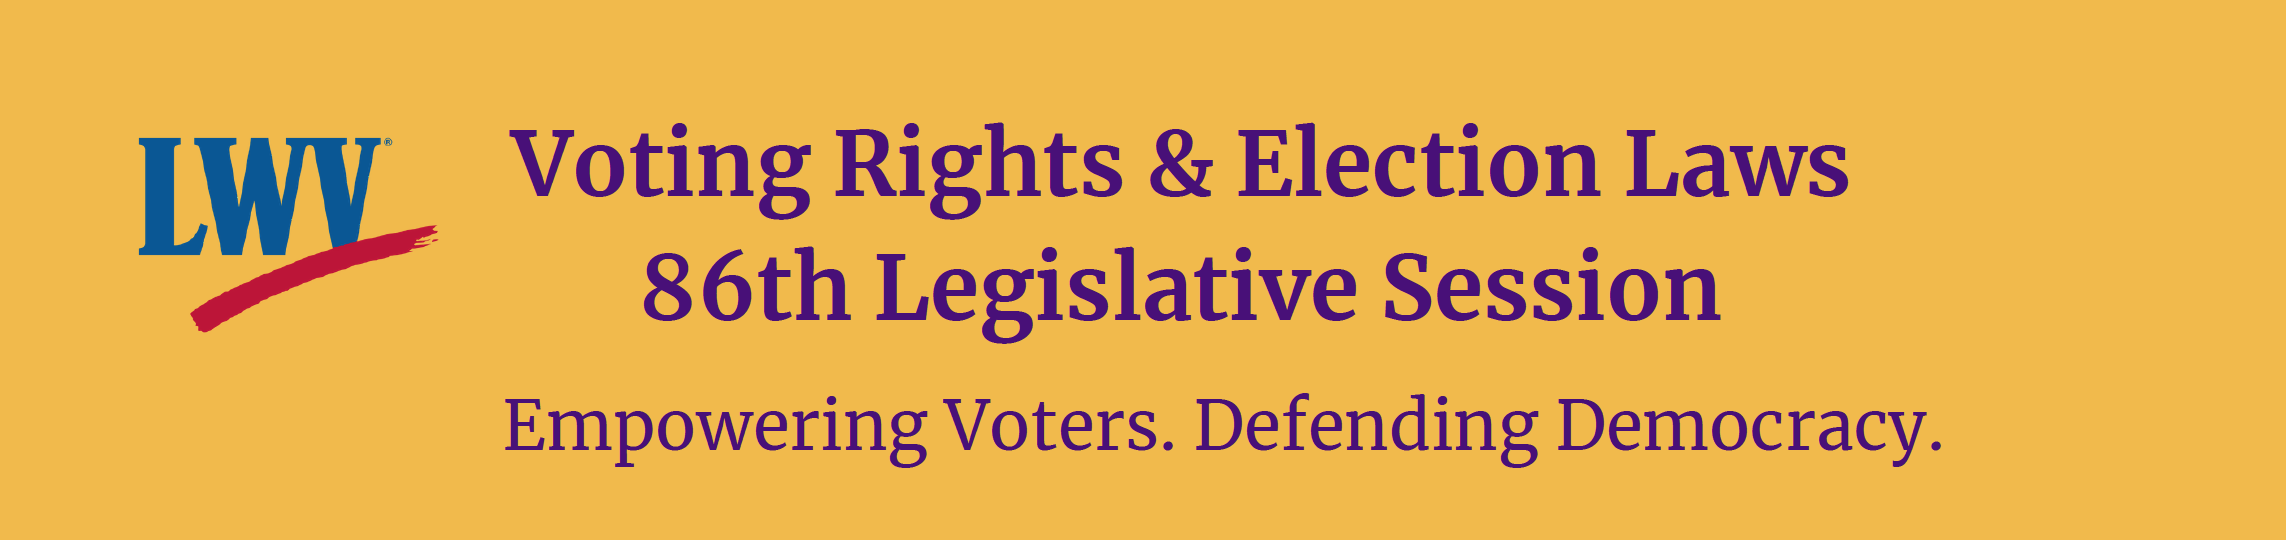 Banner LWVTX Voting Rights and Election Law Priorities for 86th Legislative Session